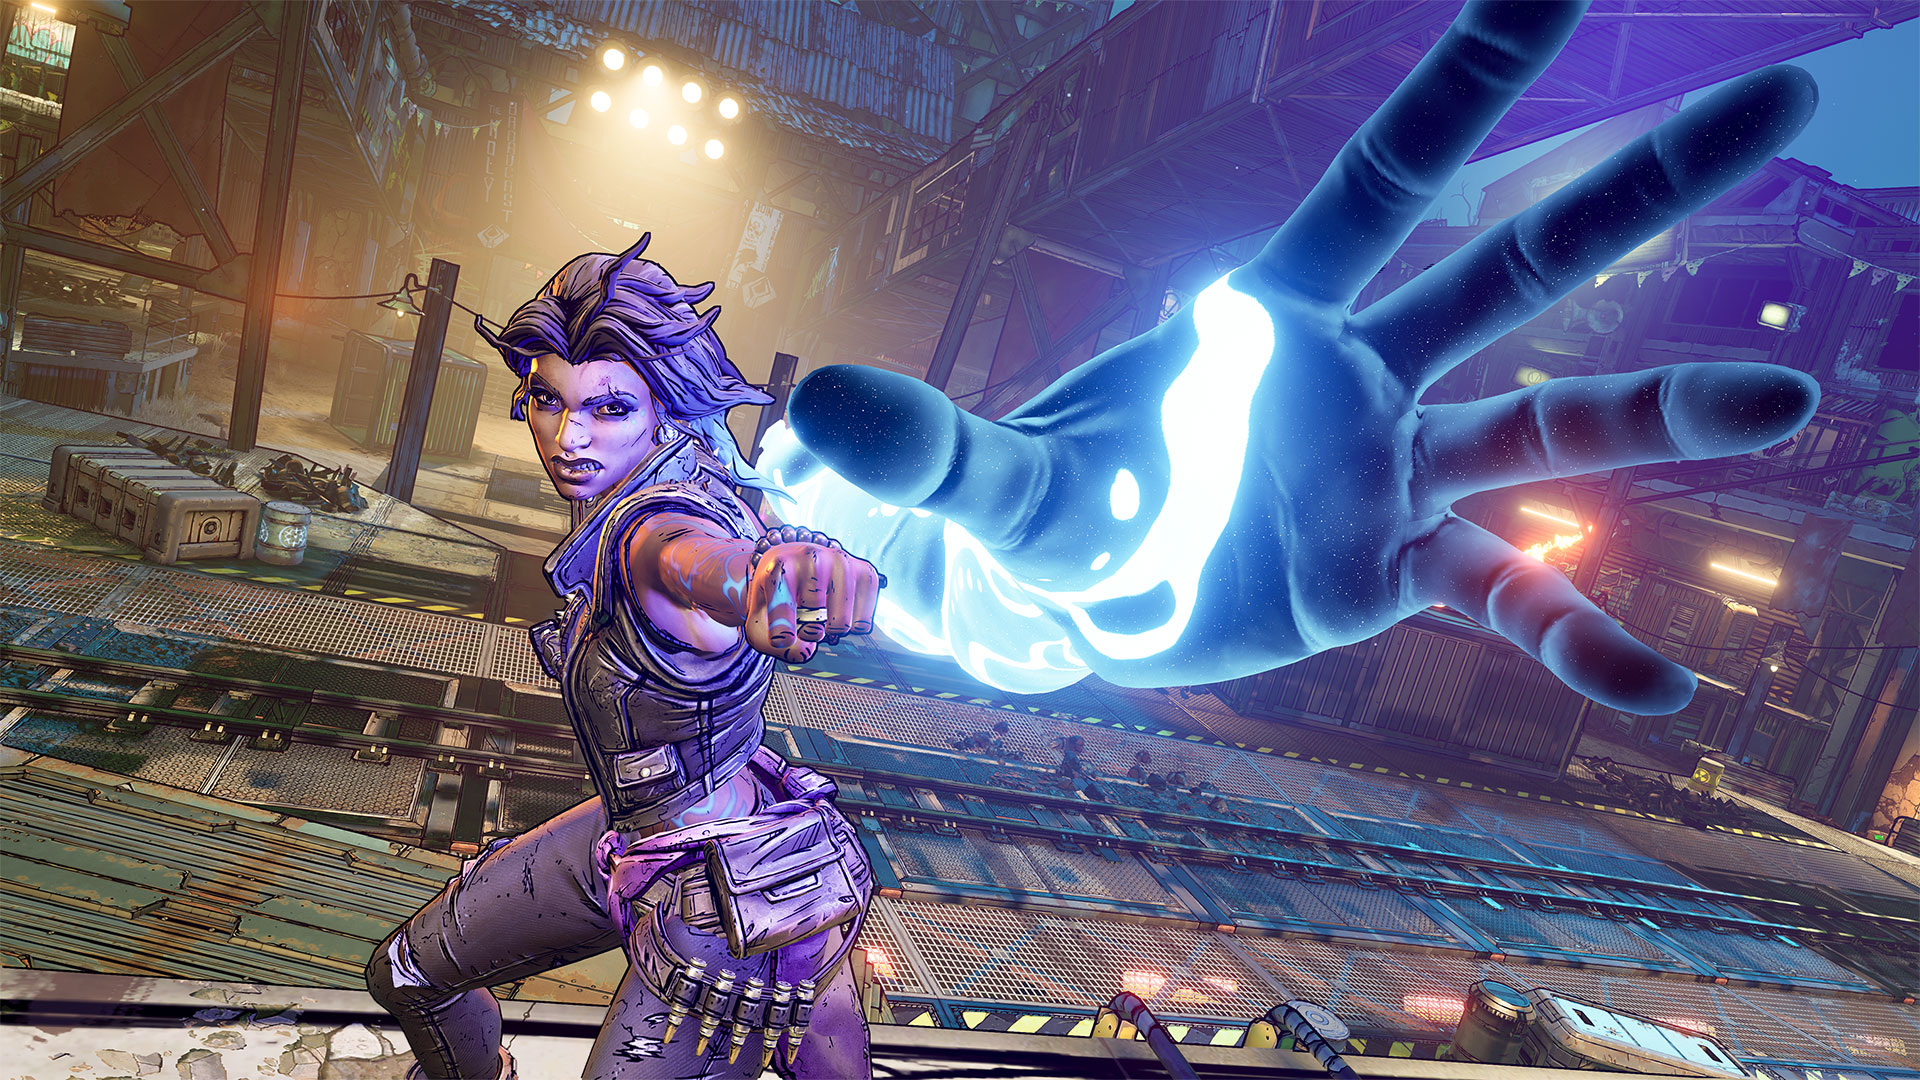 The new Borderlands 3 patch ushers in some welcome quality of life changes screenshot